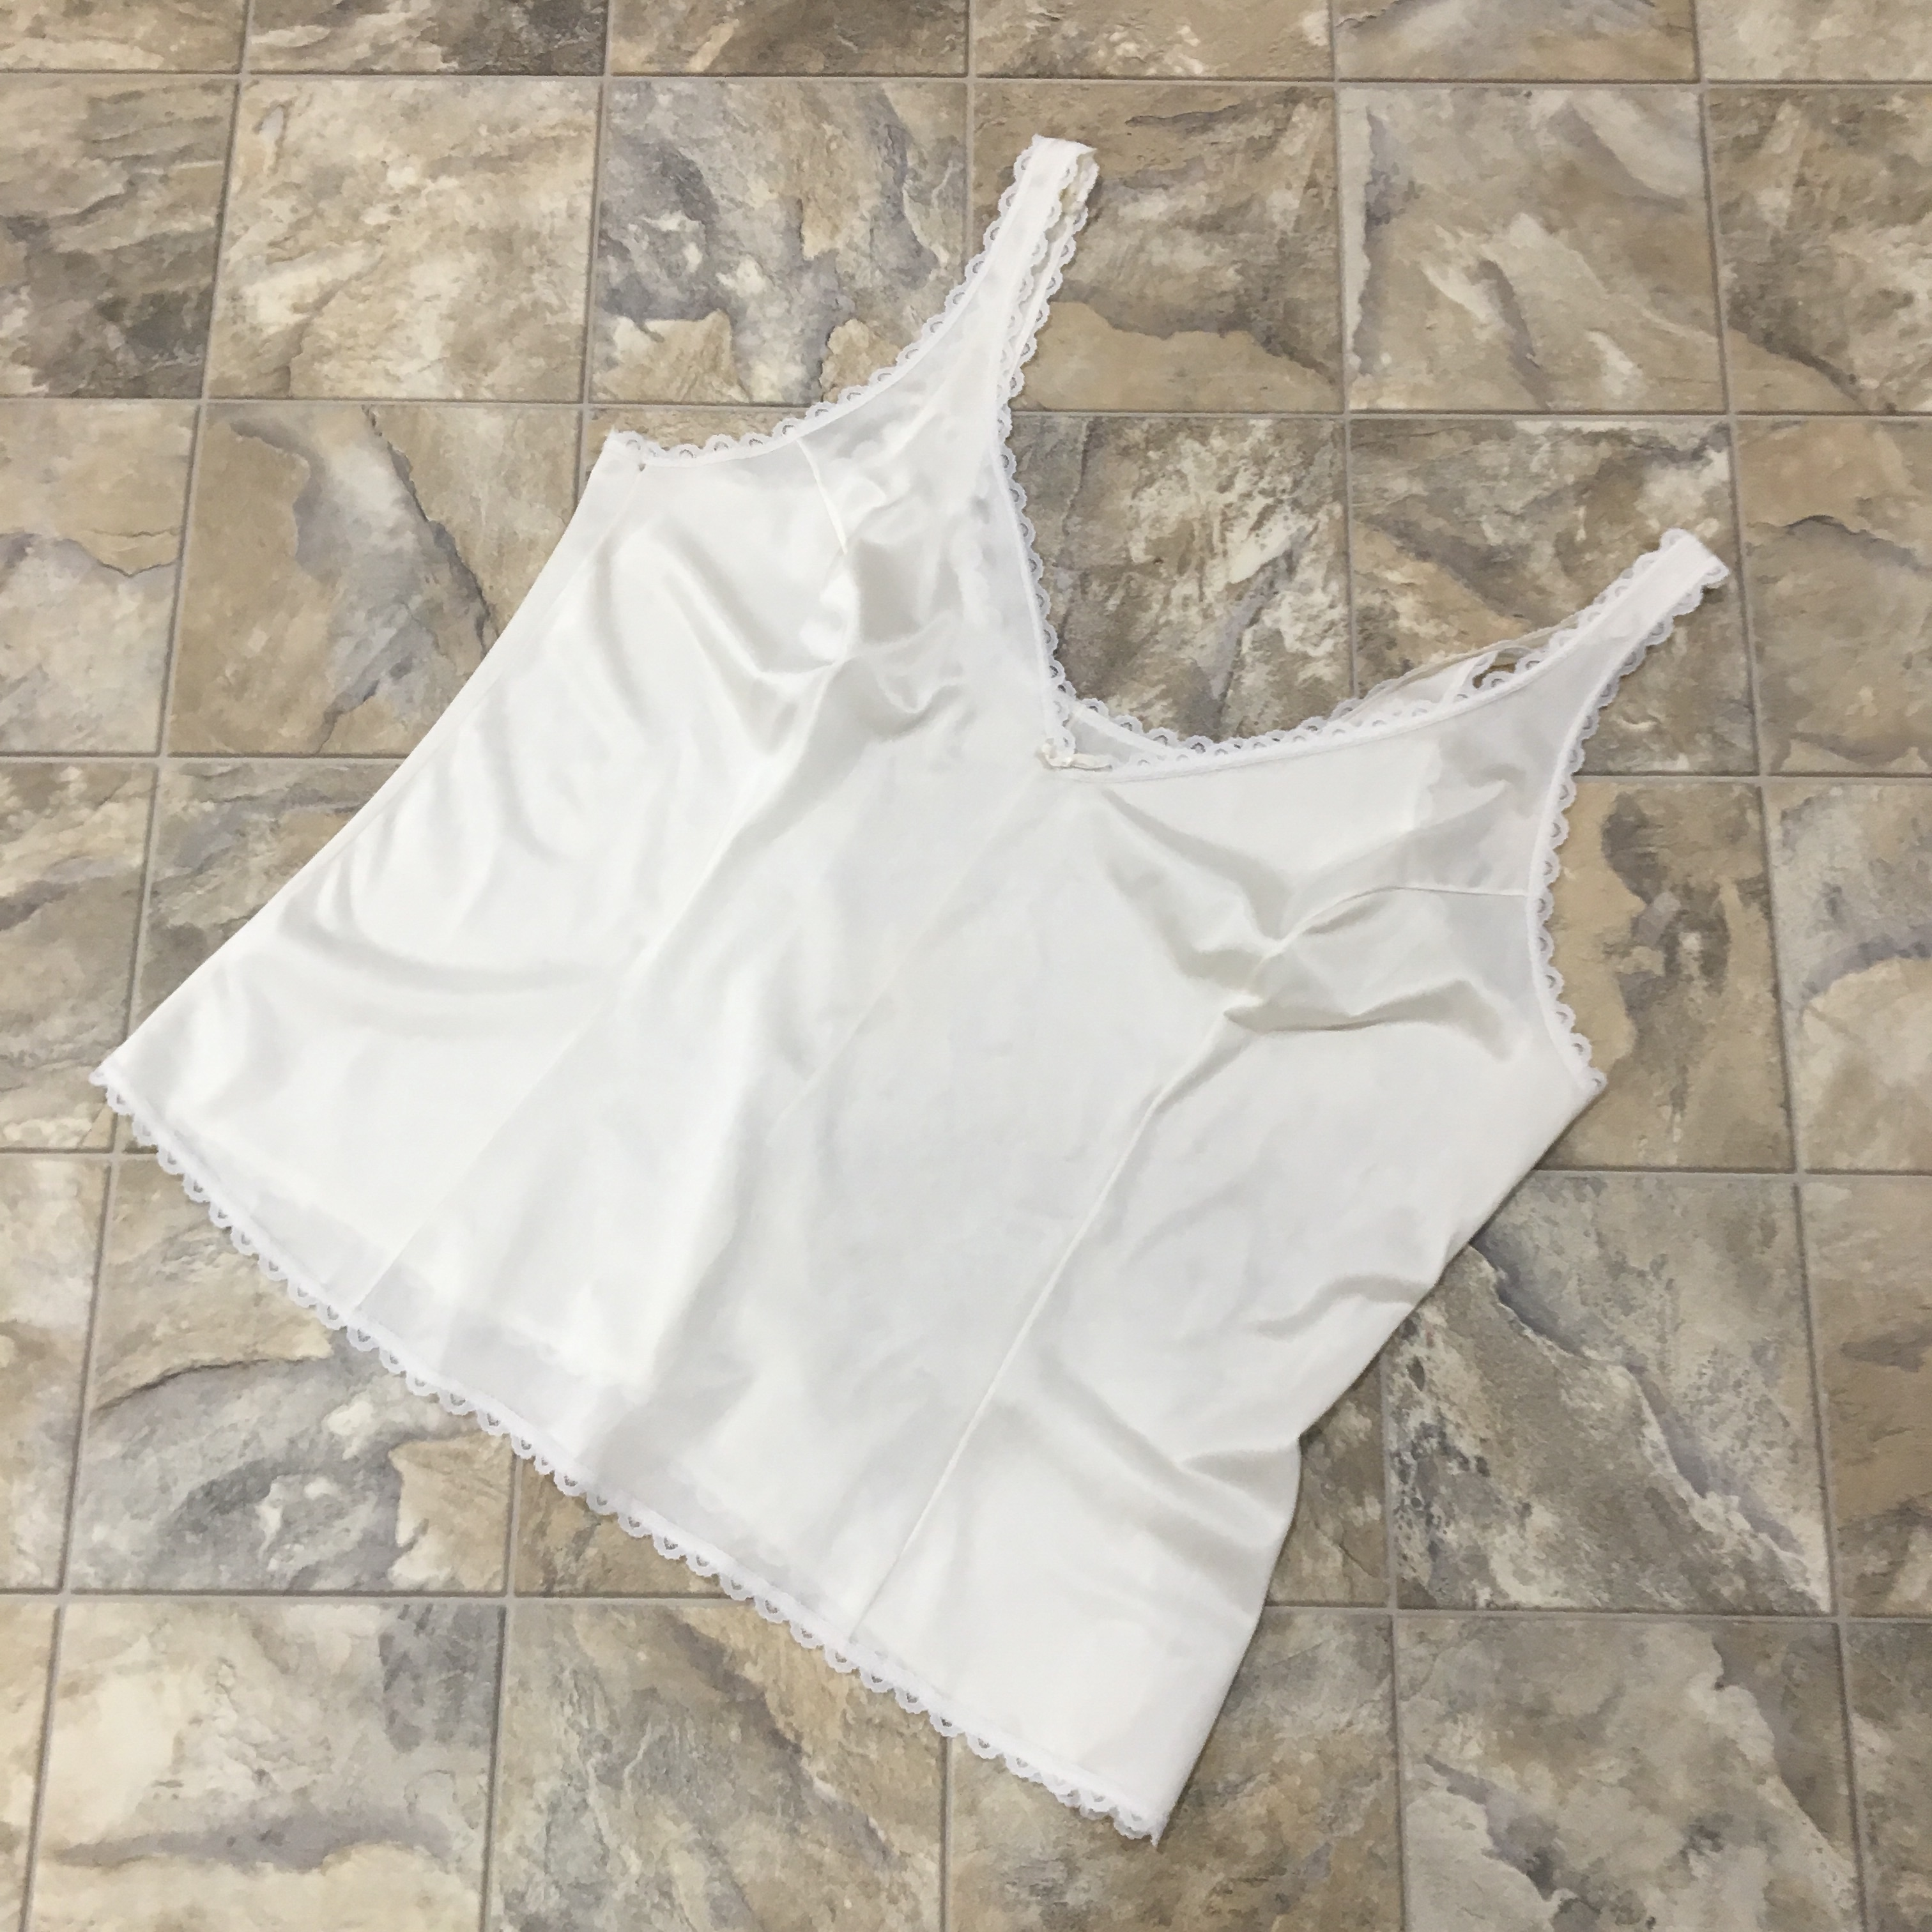 Vintage Off White Cami / Camisole / Lingerie | Lace by Depop